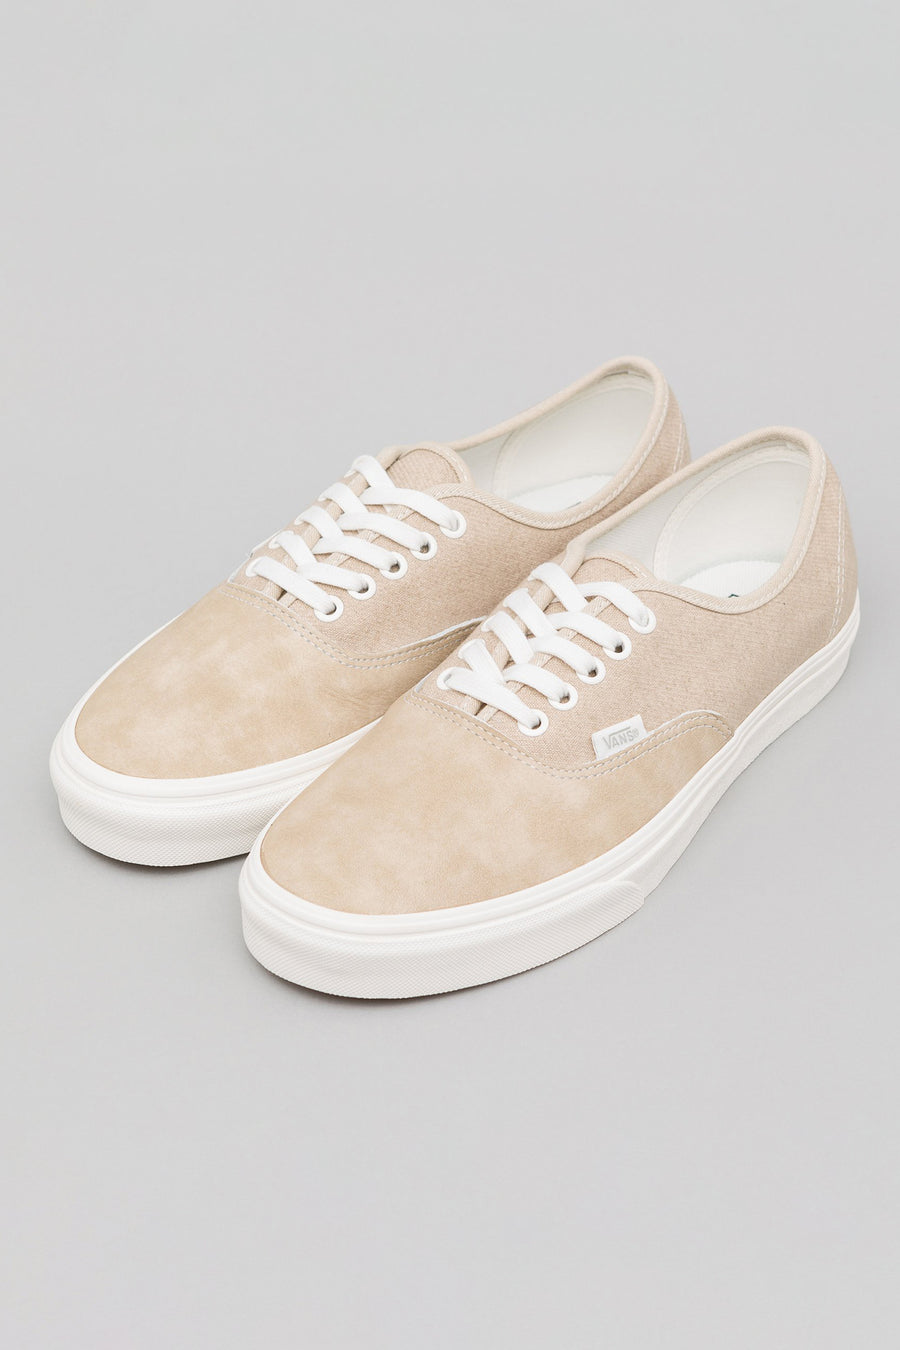 Vans Authentic Washed Nubuck in Hummus - Notre